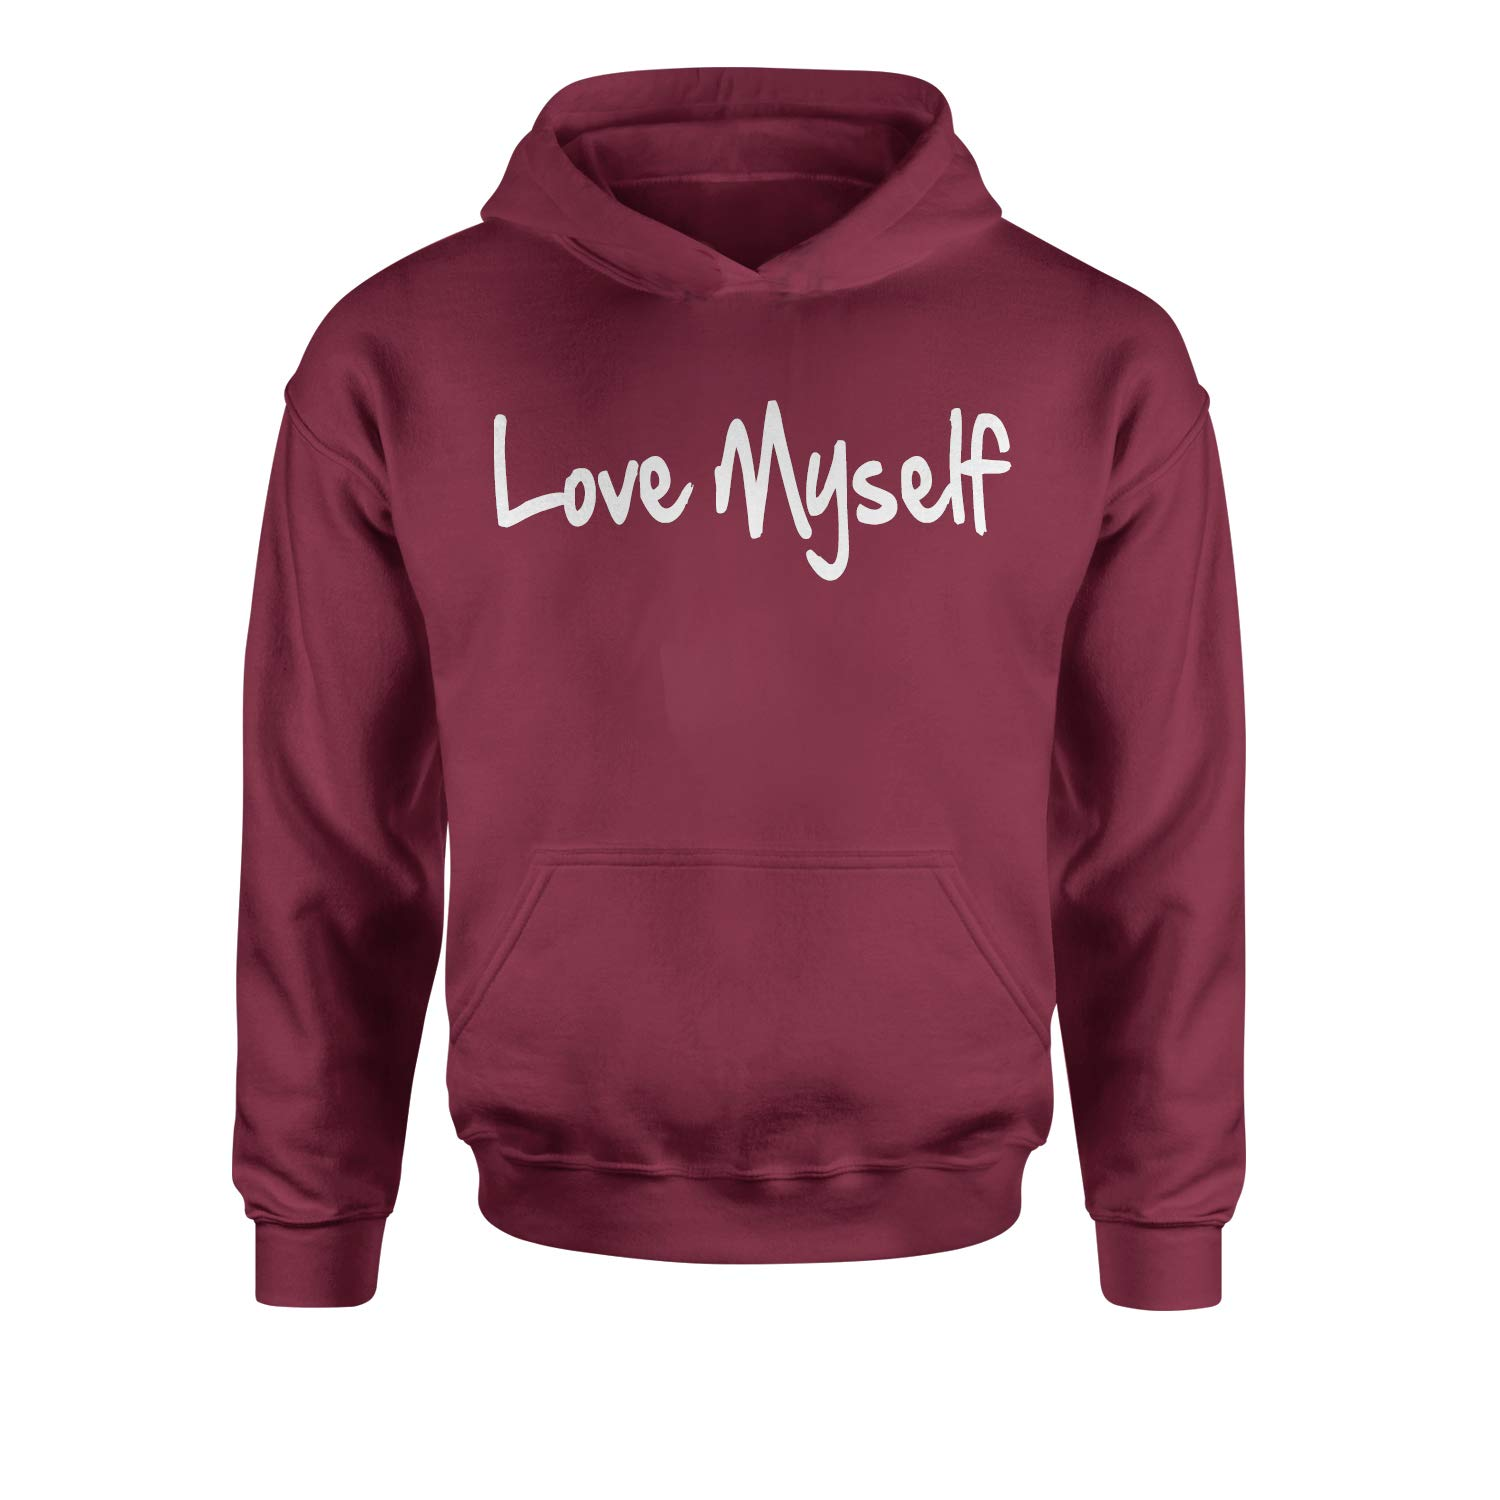 Expression Tees Love Myself Youth-Sized Hoodie